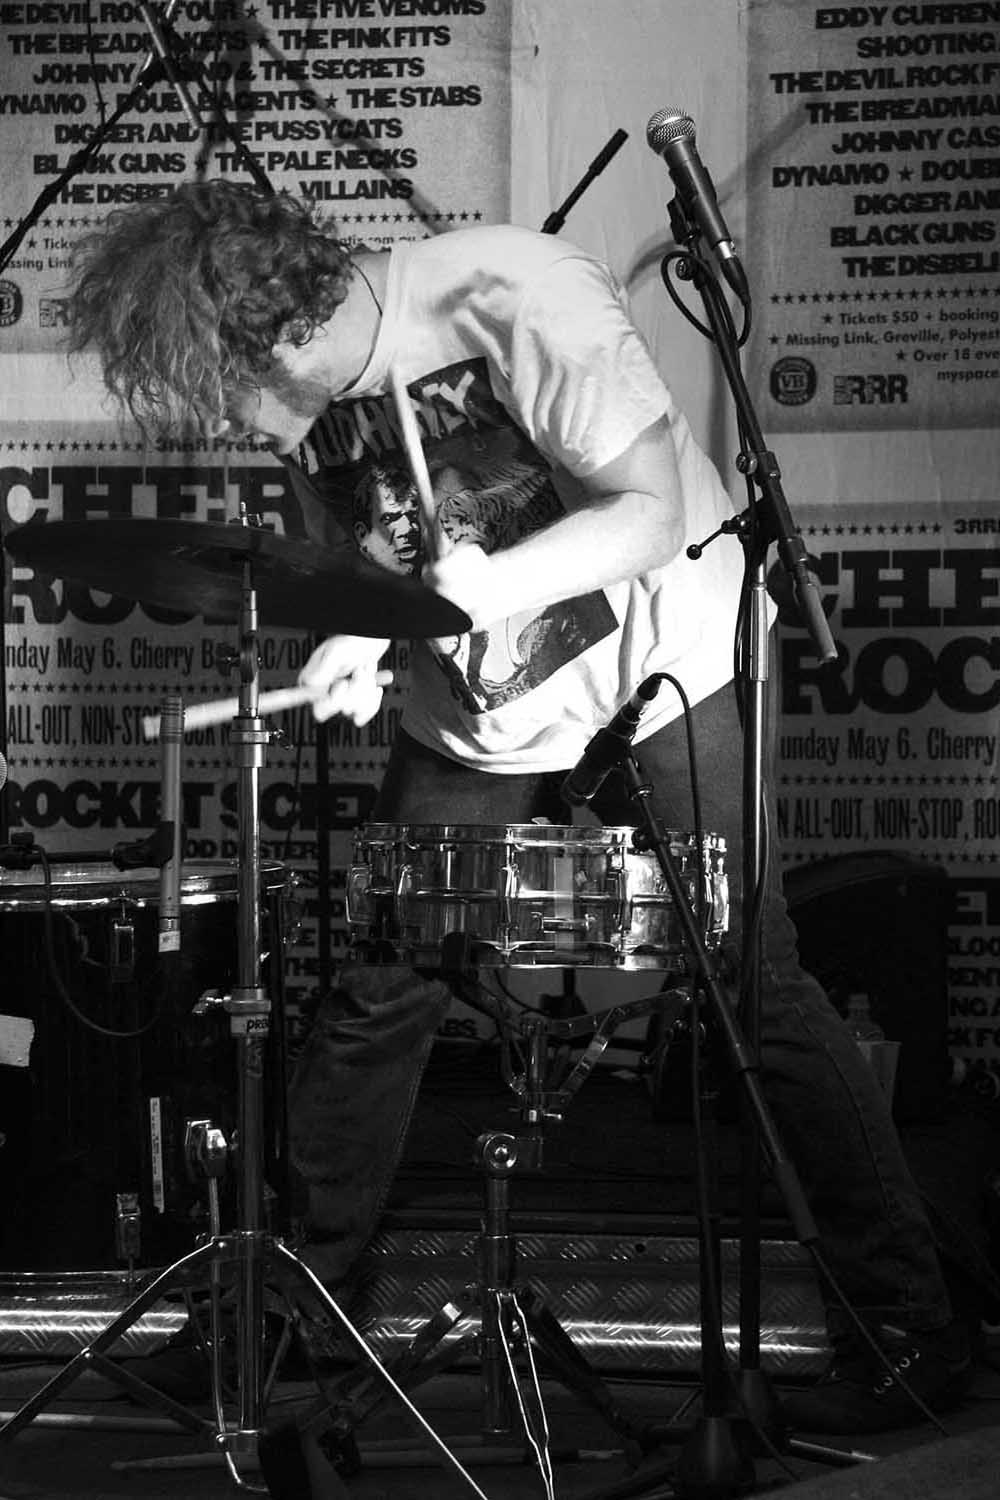 Digger & The Pussycats (Andy Moore), Cherry Rock 2007